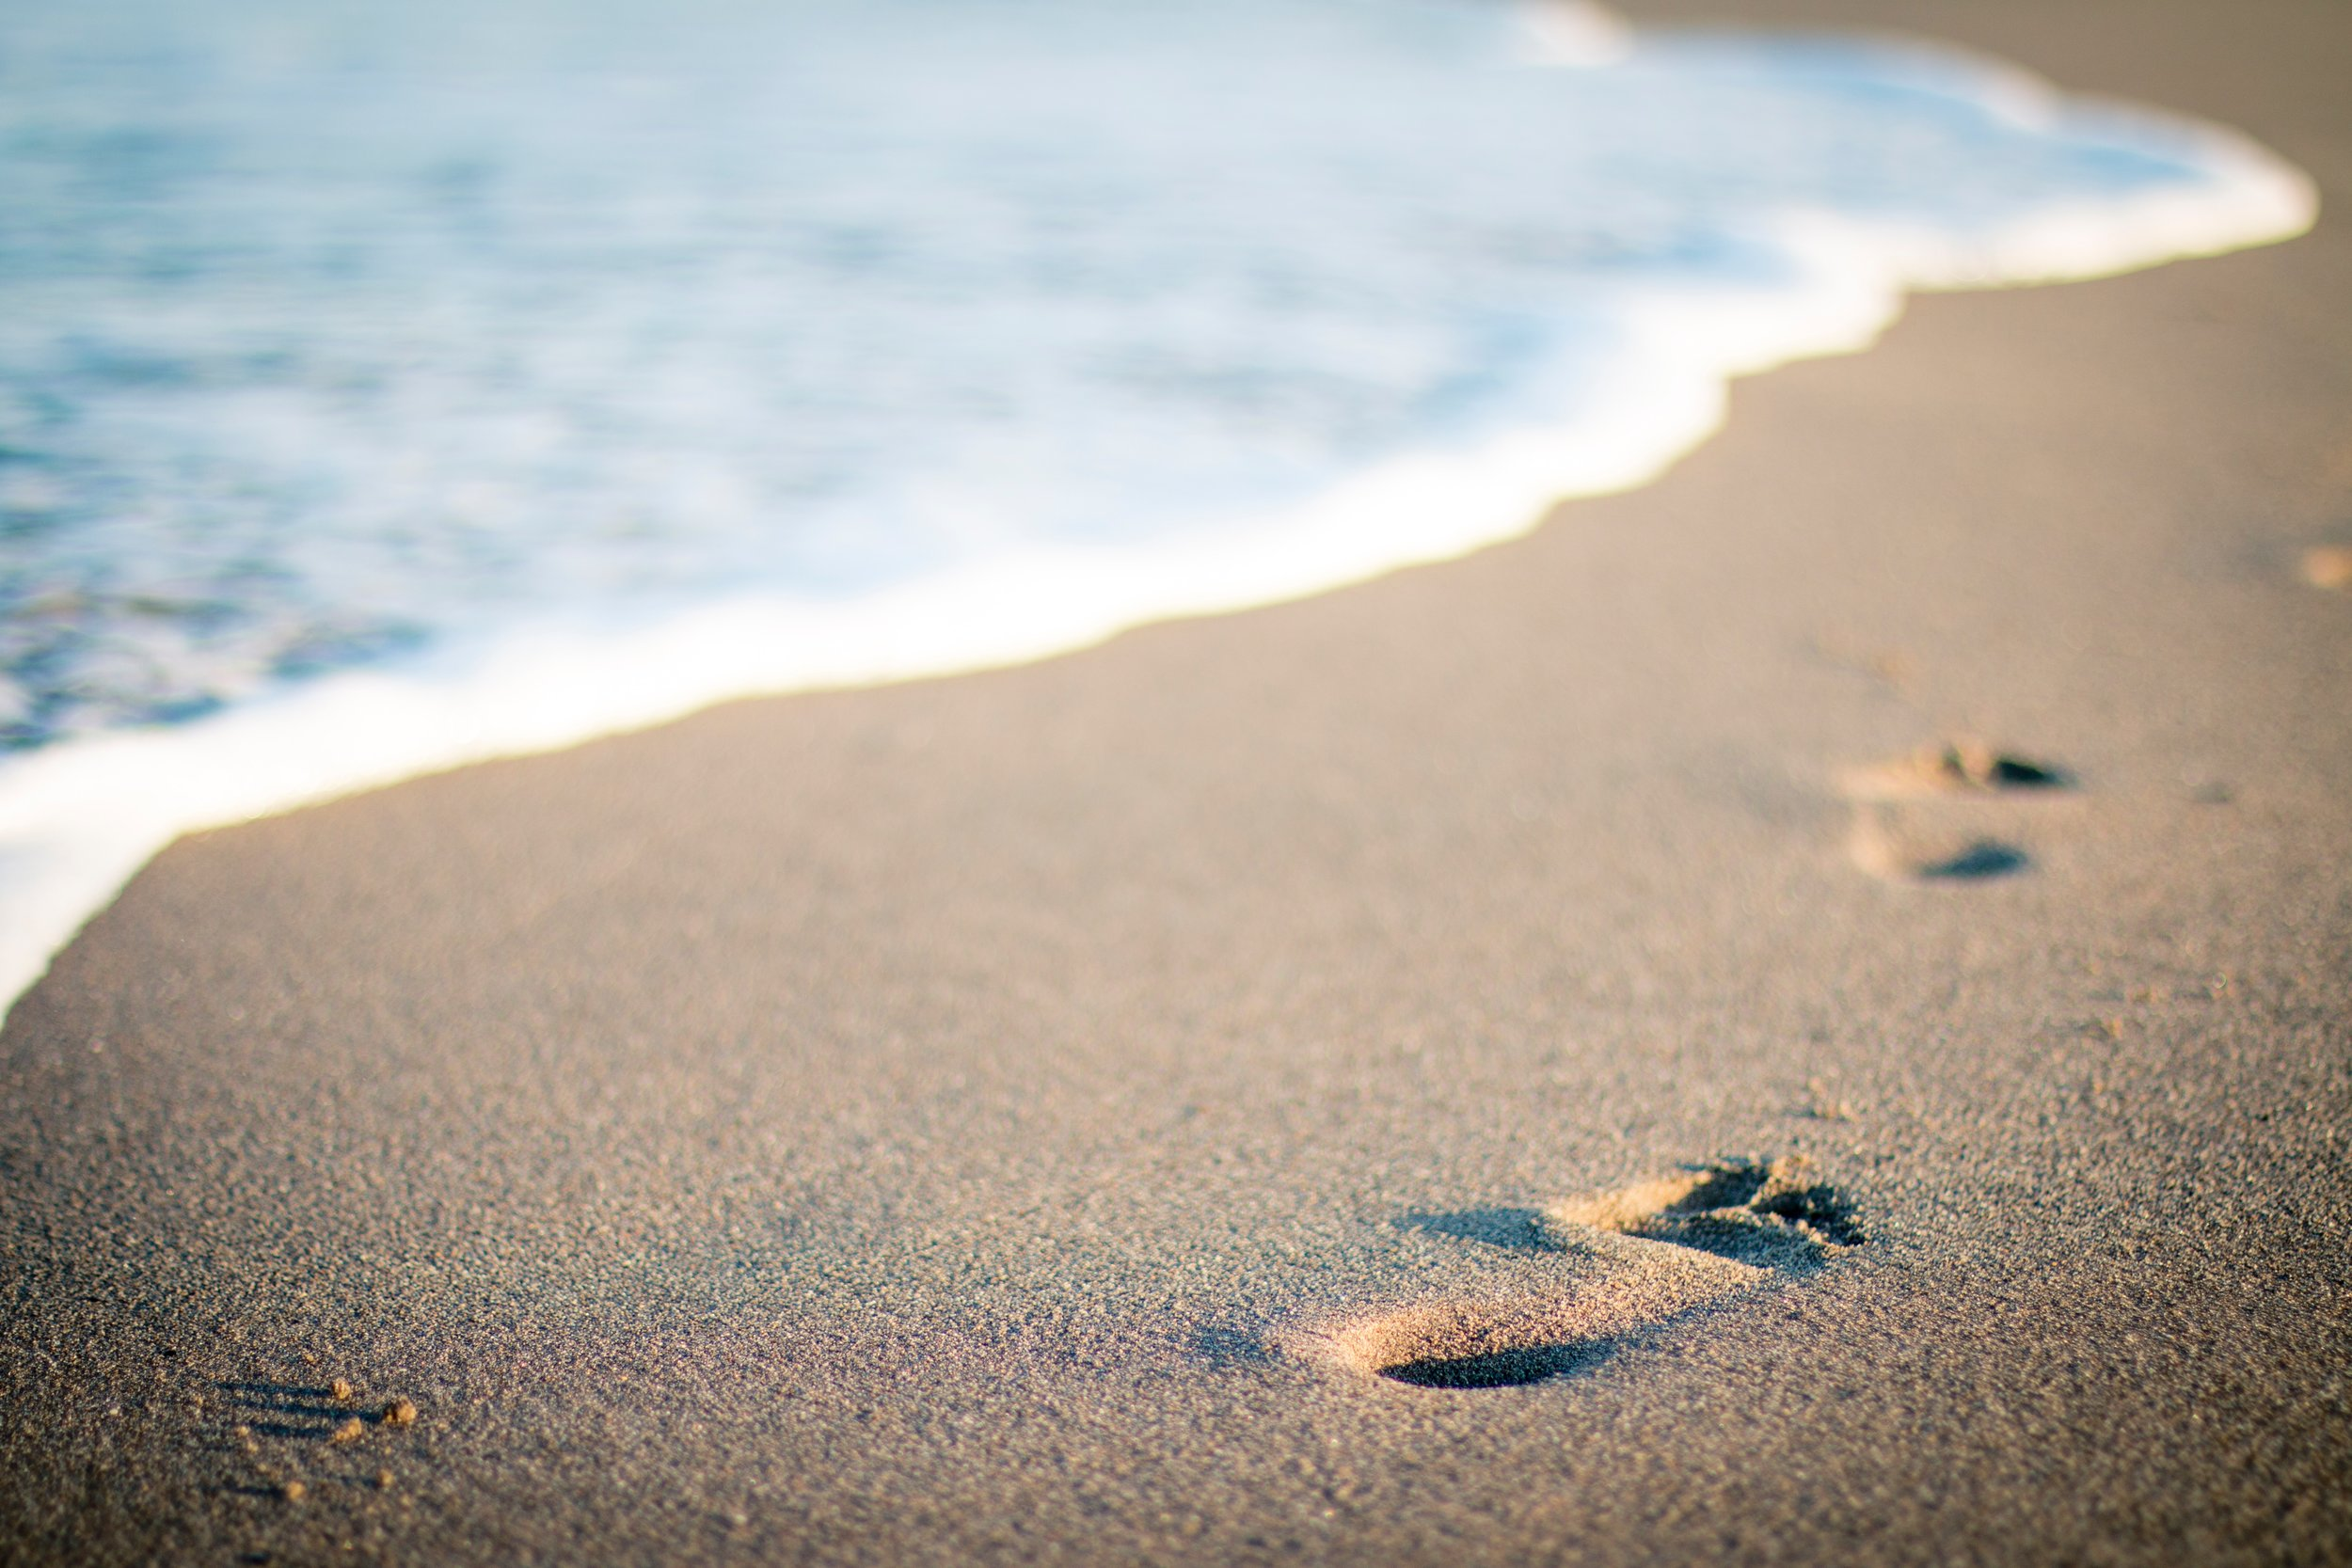 Image displaying footprints in the sand symbolizing the telemedicine therapy services provided by Tammy Dobbs